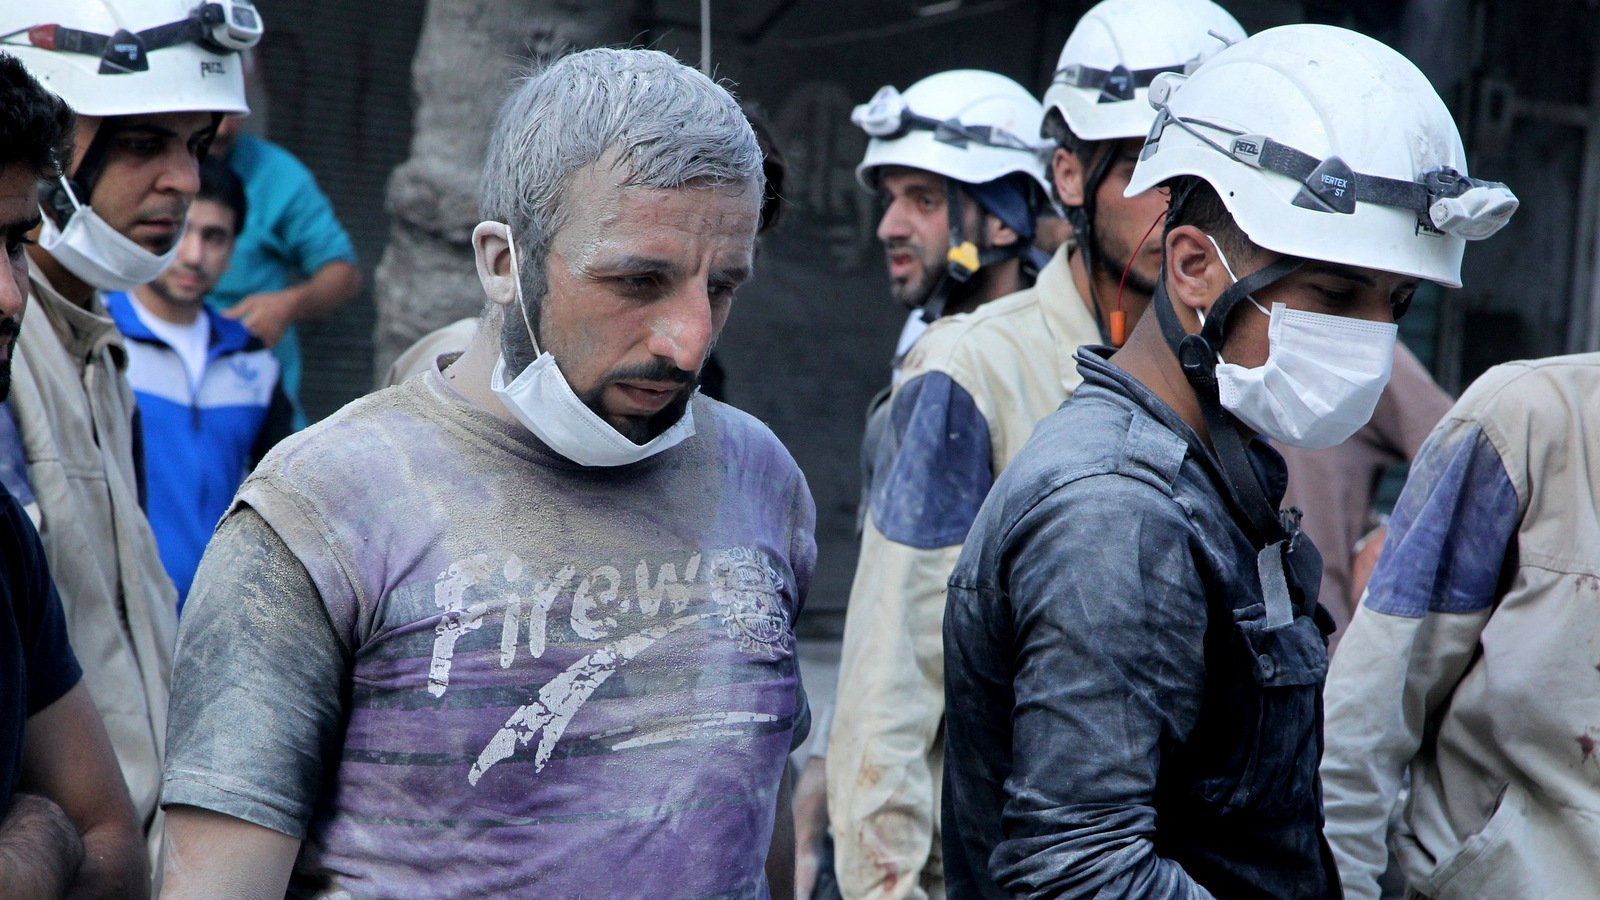 Canada Provides Safe Haven to White Helmet Terrorist Factions – Global Research